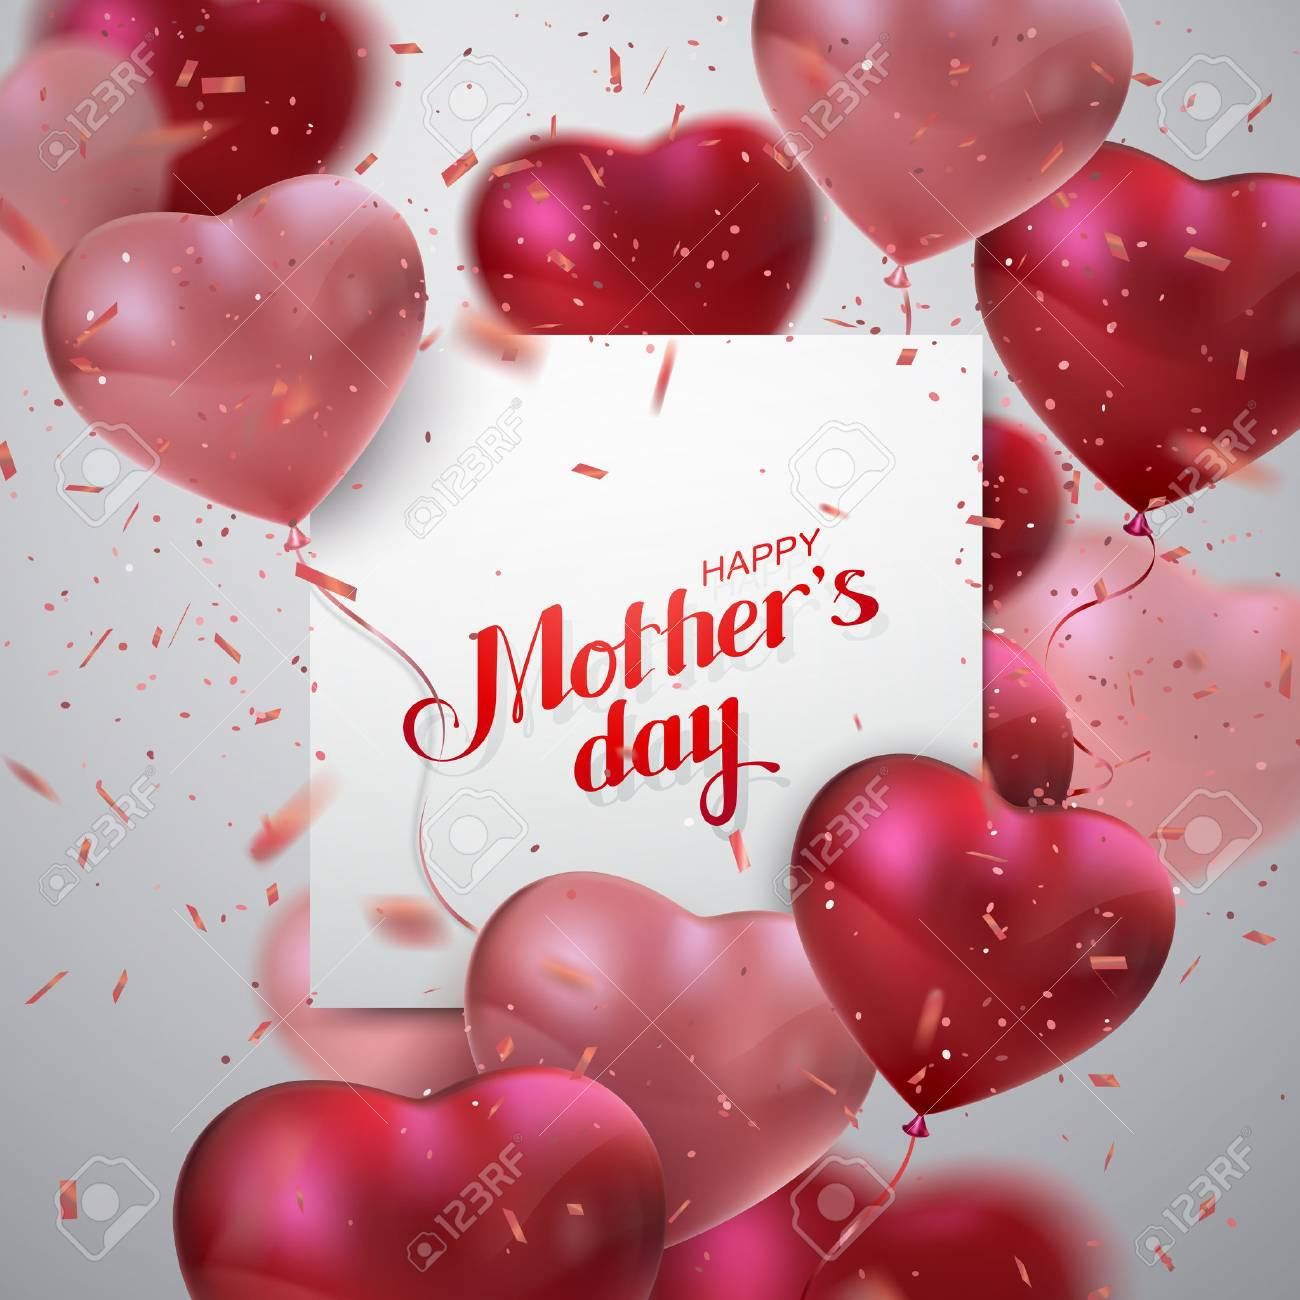 Happy Mothers Day. - 73470474